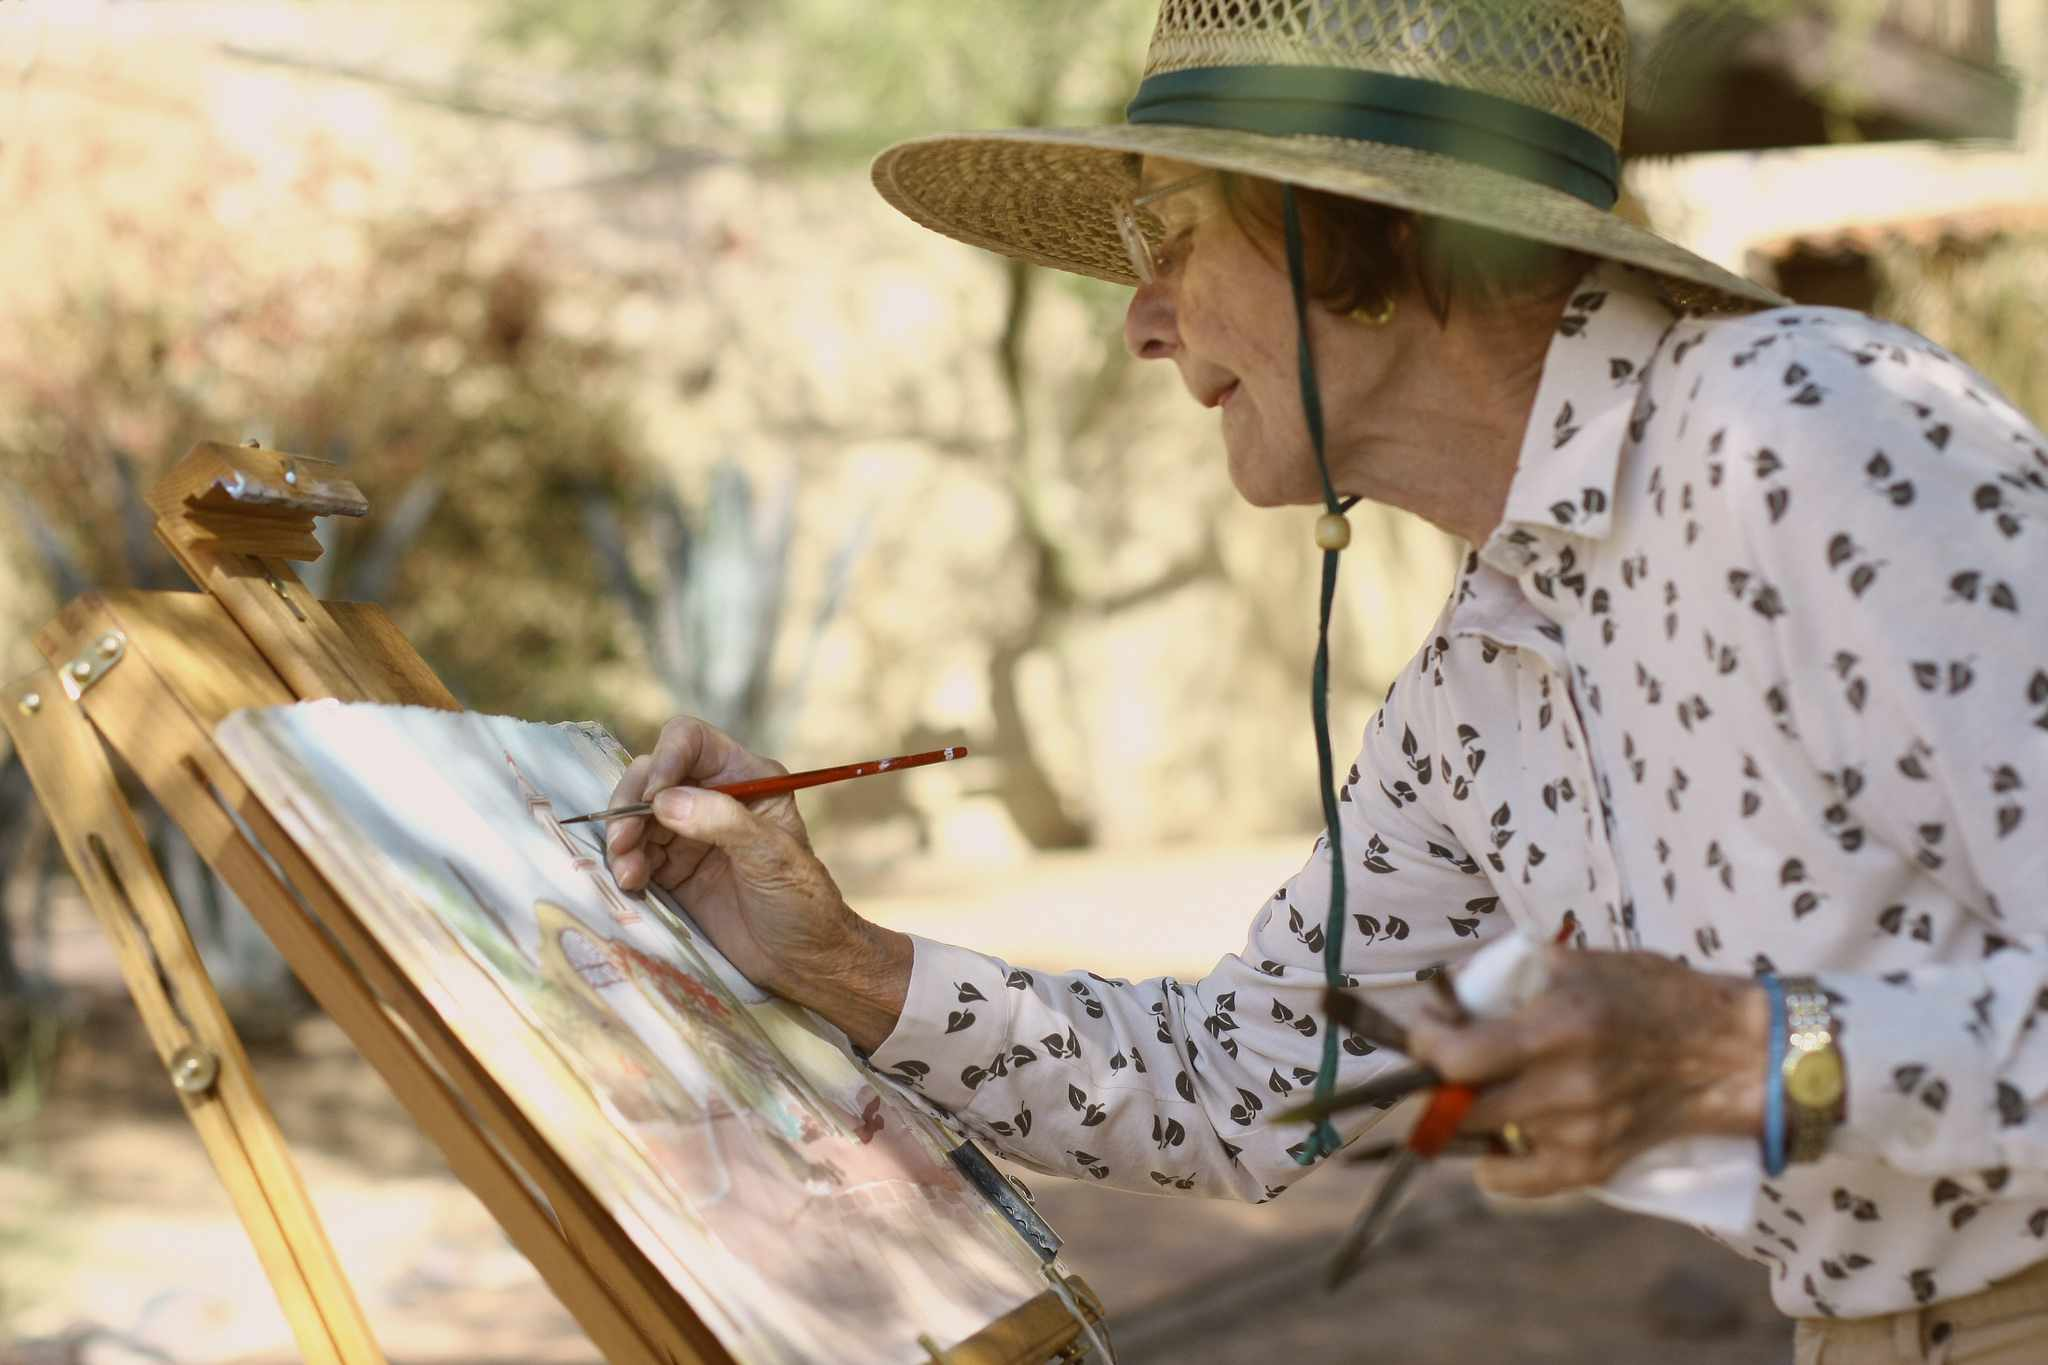 Older woman at an easel painting as part of art therapy for cancer